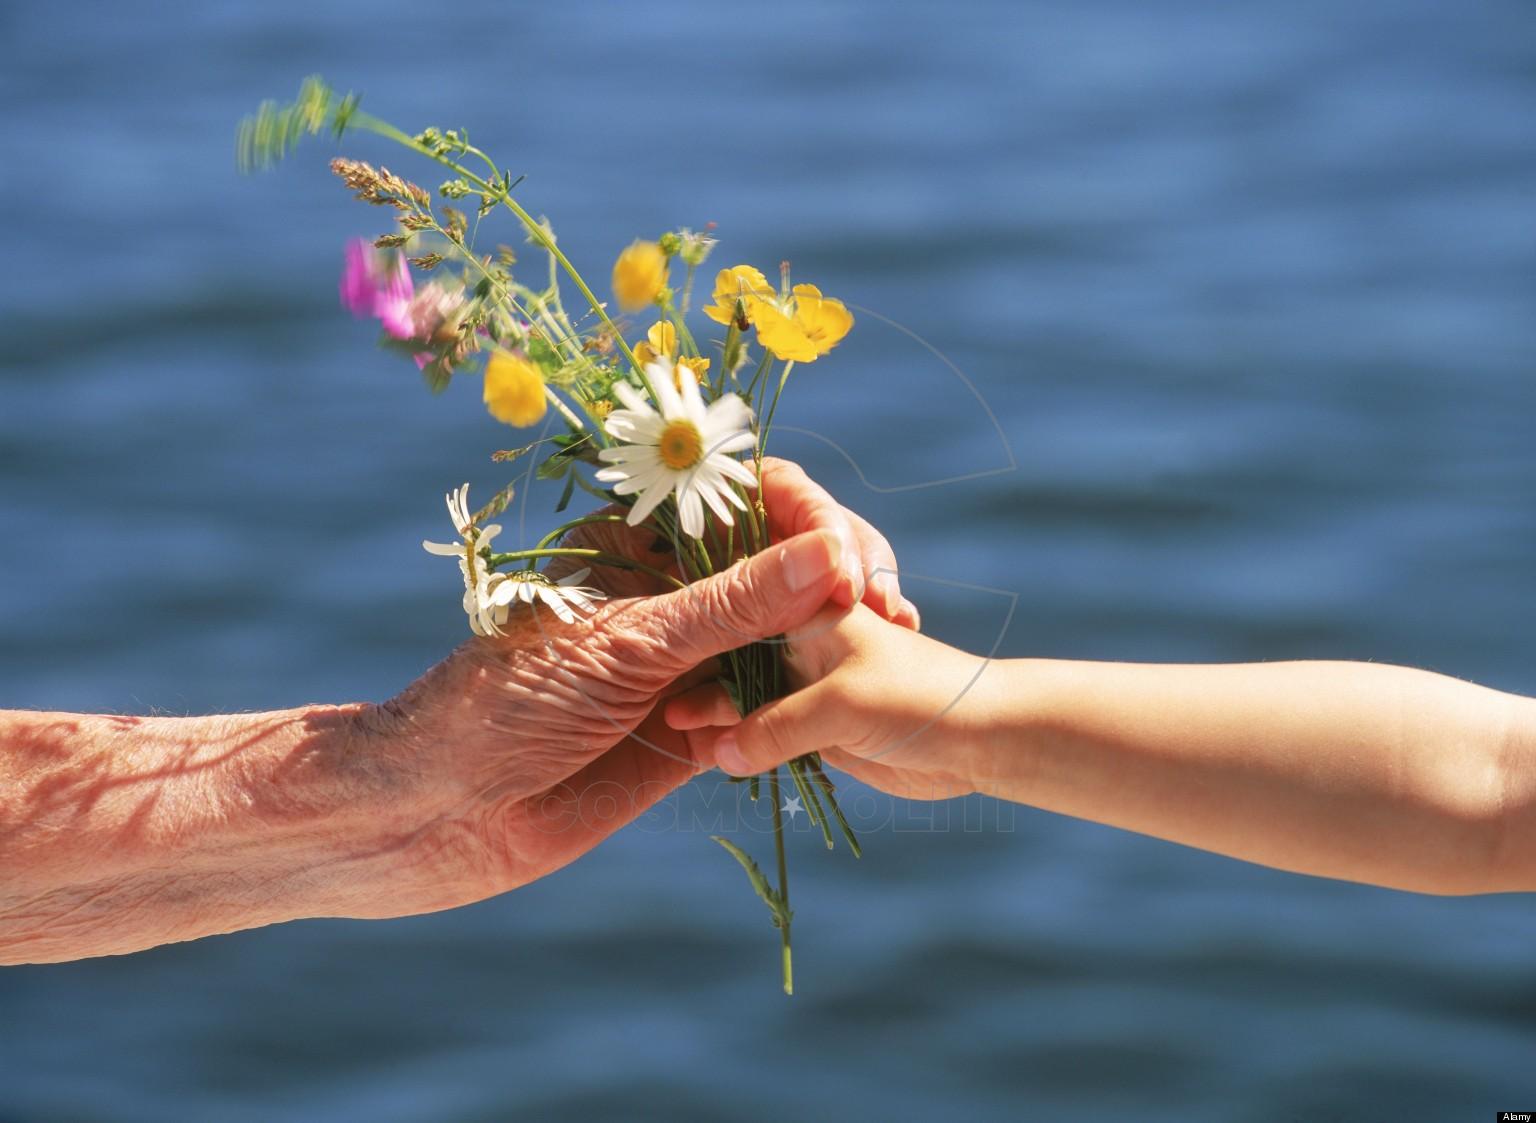 ABNHKB Grandchild offering small bouquet of summer wild flowers to grandmother